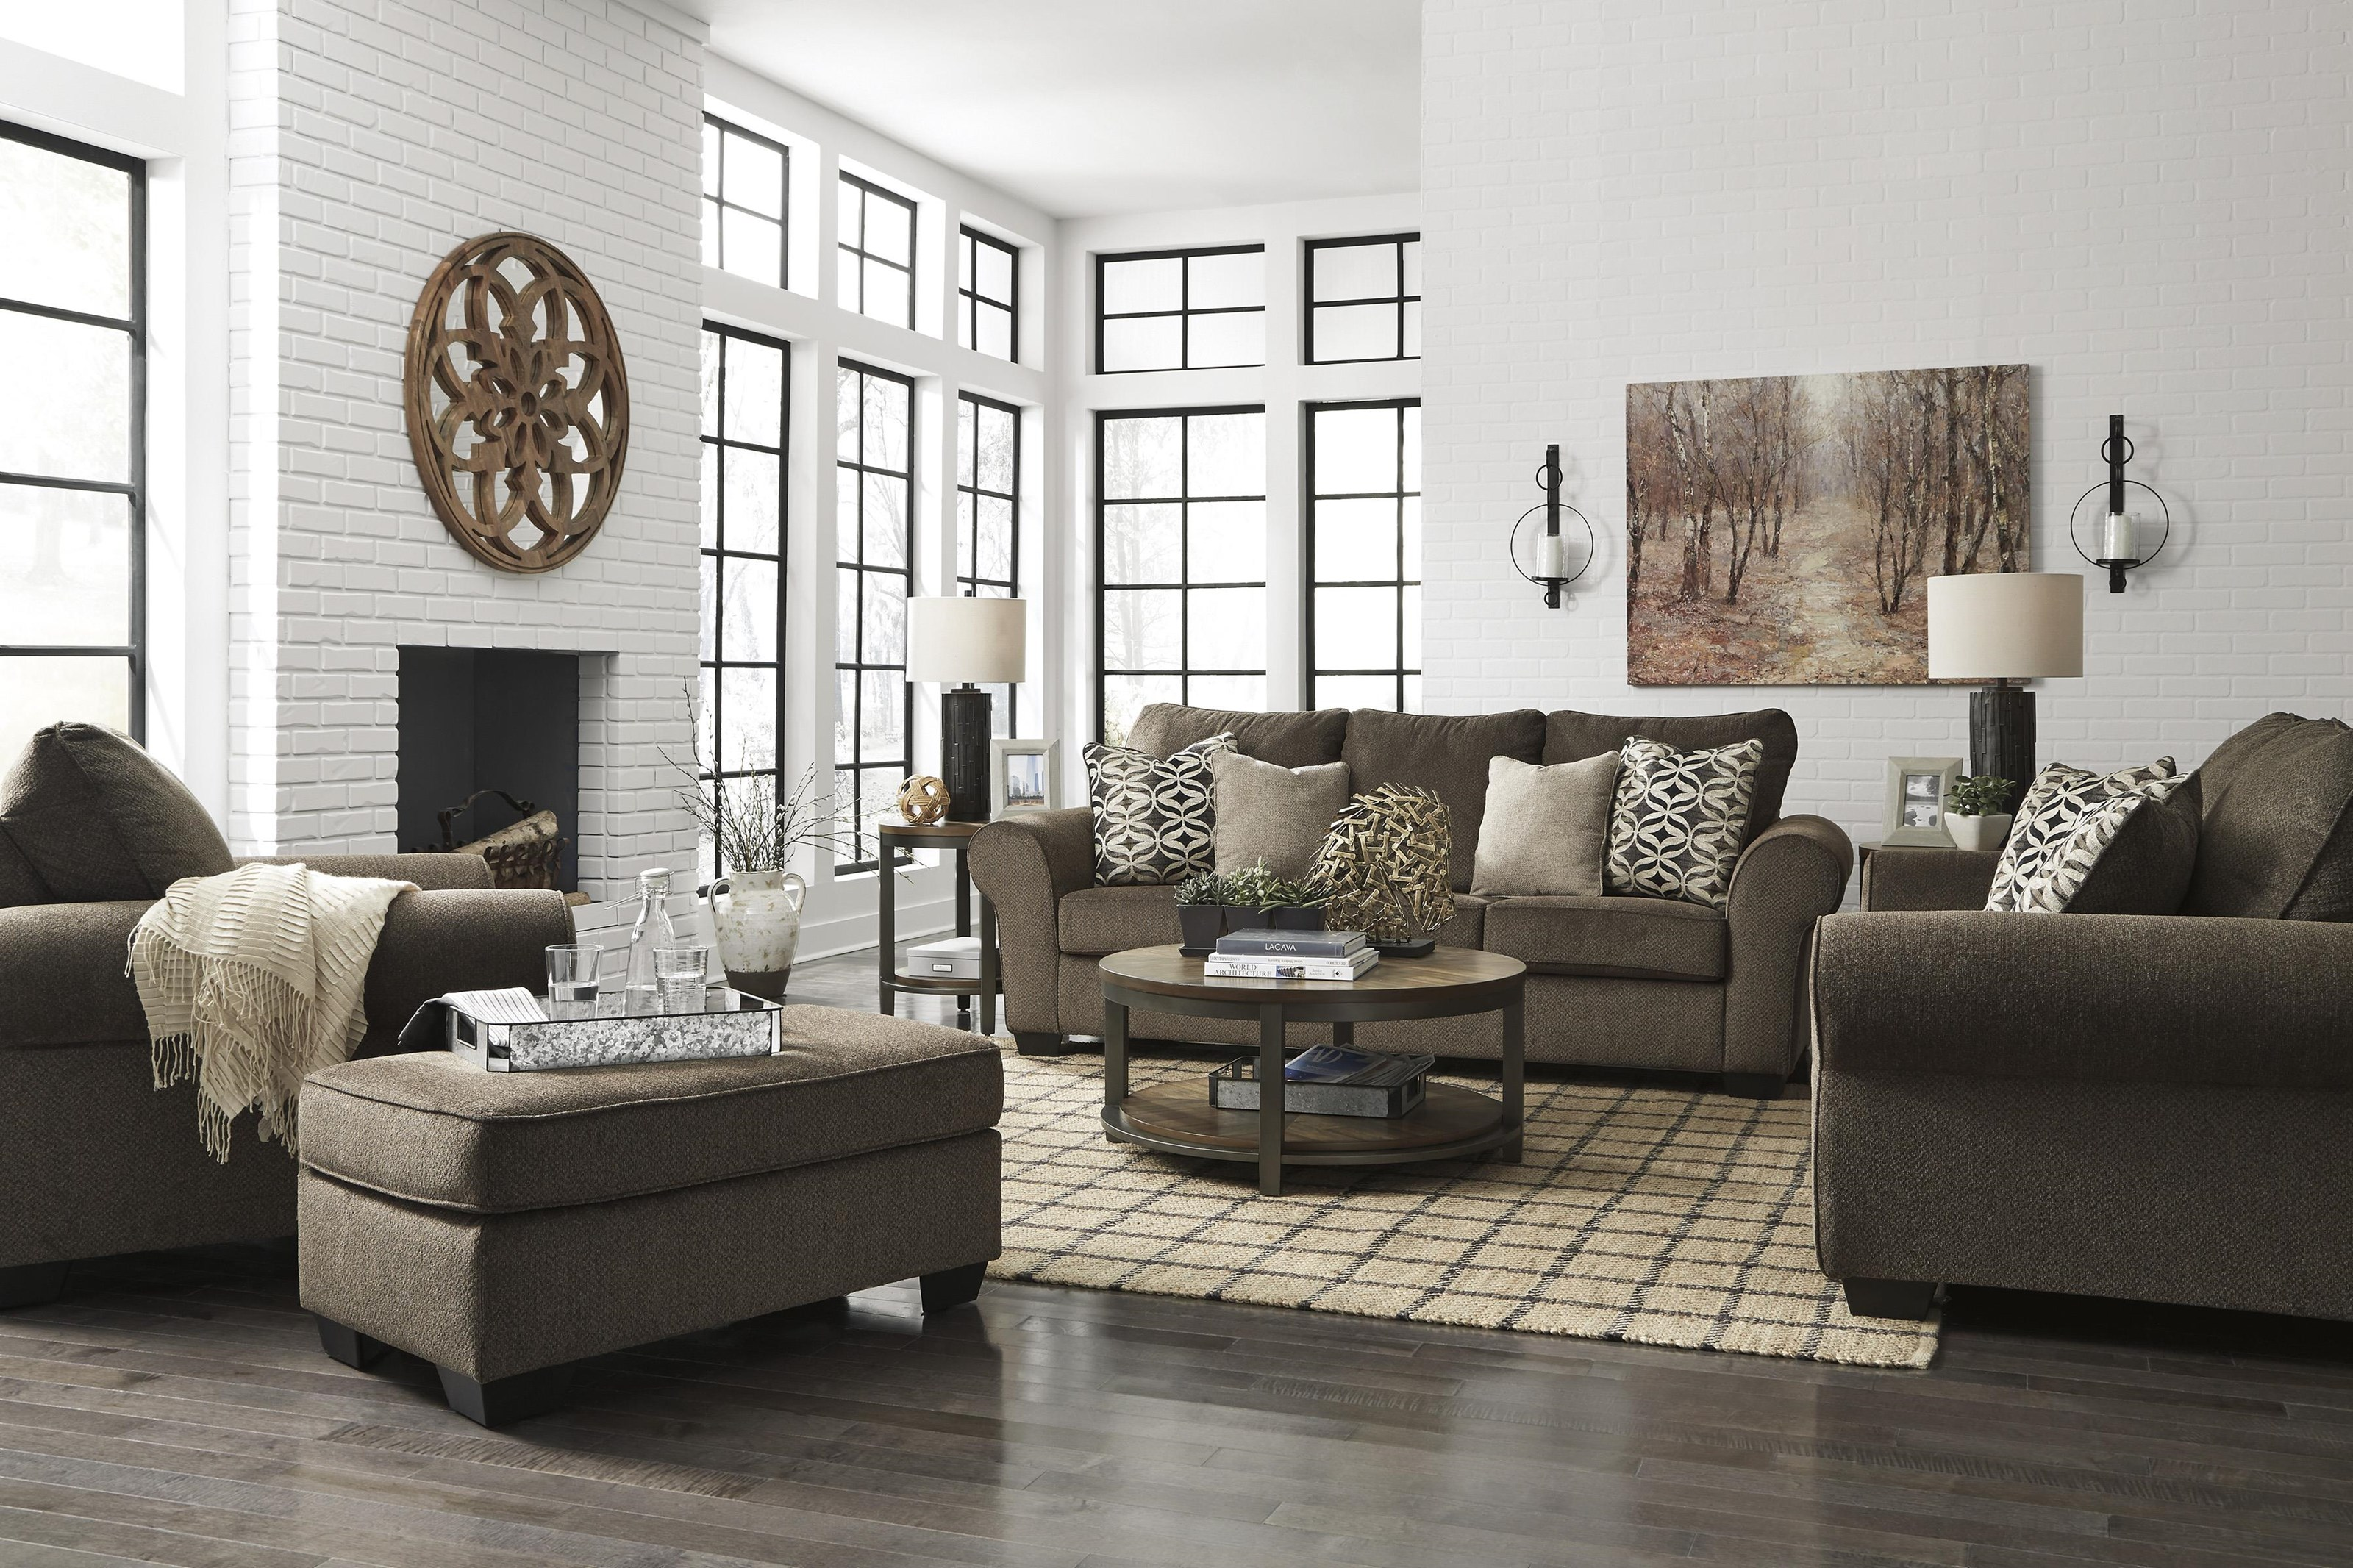 Nesso Sofa, Loveseat and Chair Set by Benchcraft at Sam Levitz Outlet